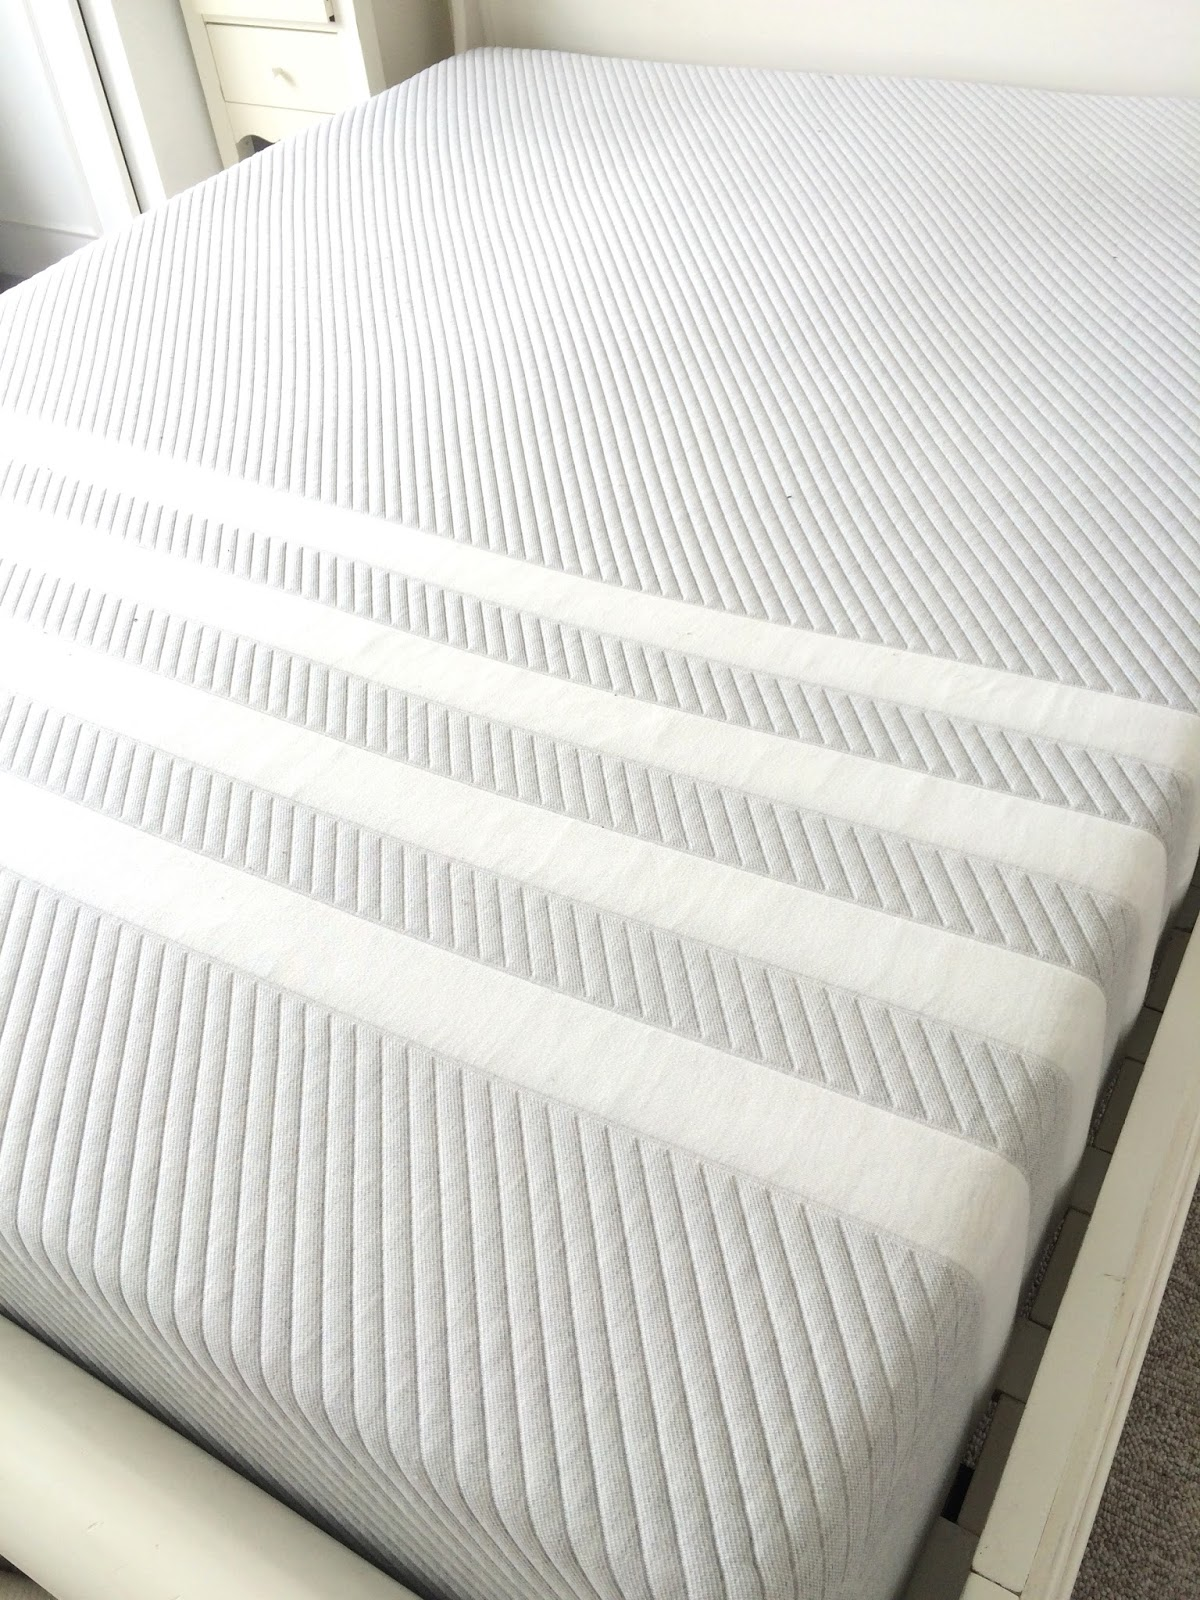 All the photos on this post were taken today. You can see there is no  change to the shape of the mattress. I have found with my previous  mattresses after ...